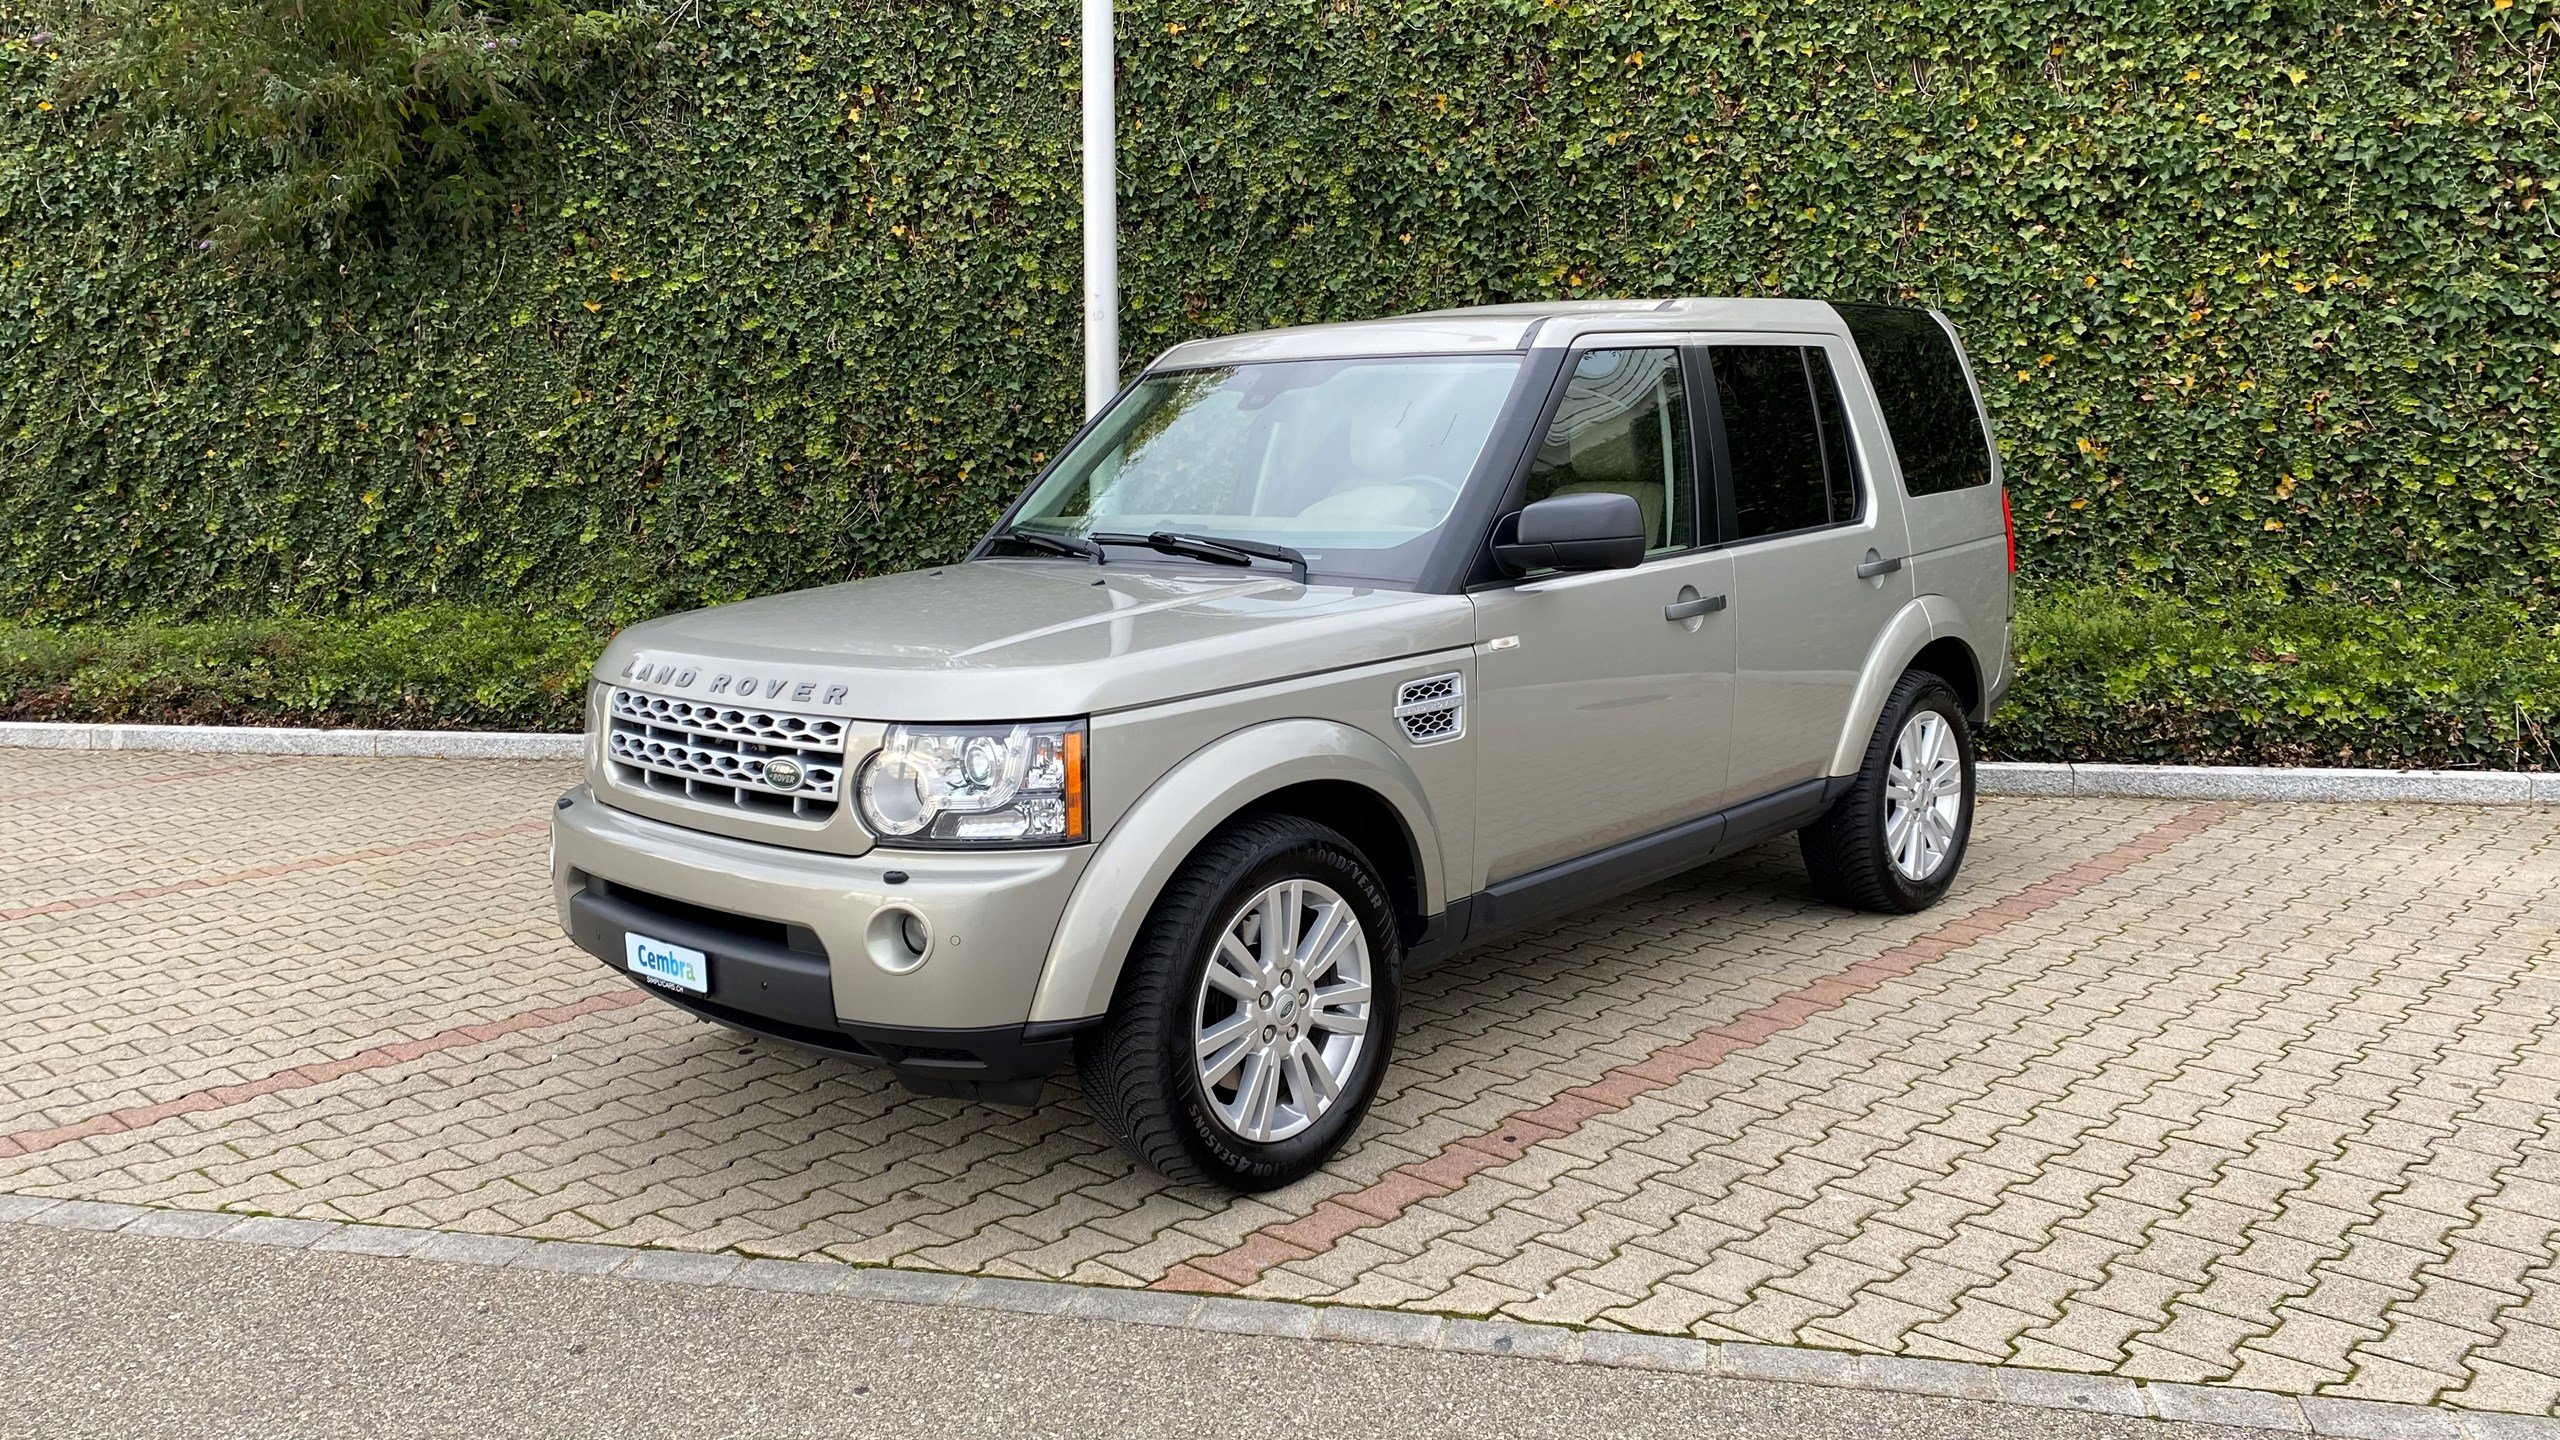 suv Land Rover Discovery 3.0 TDV6 HSE Automatic